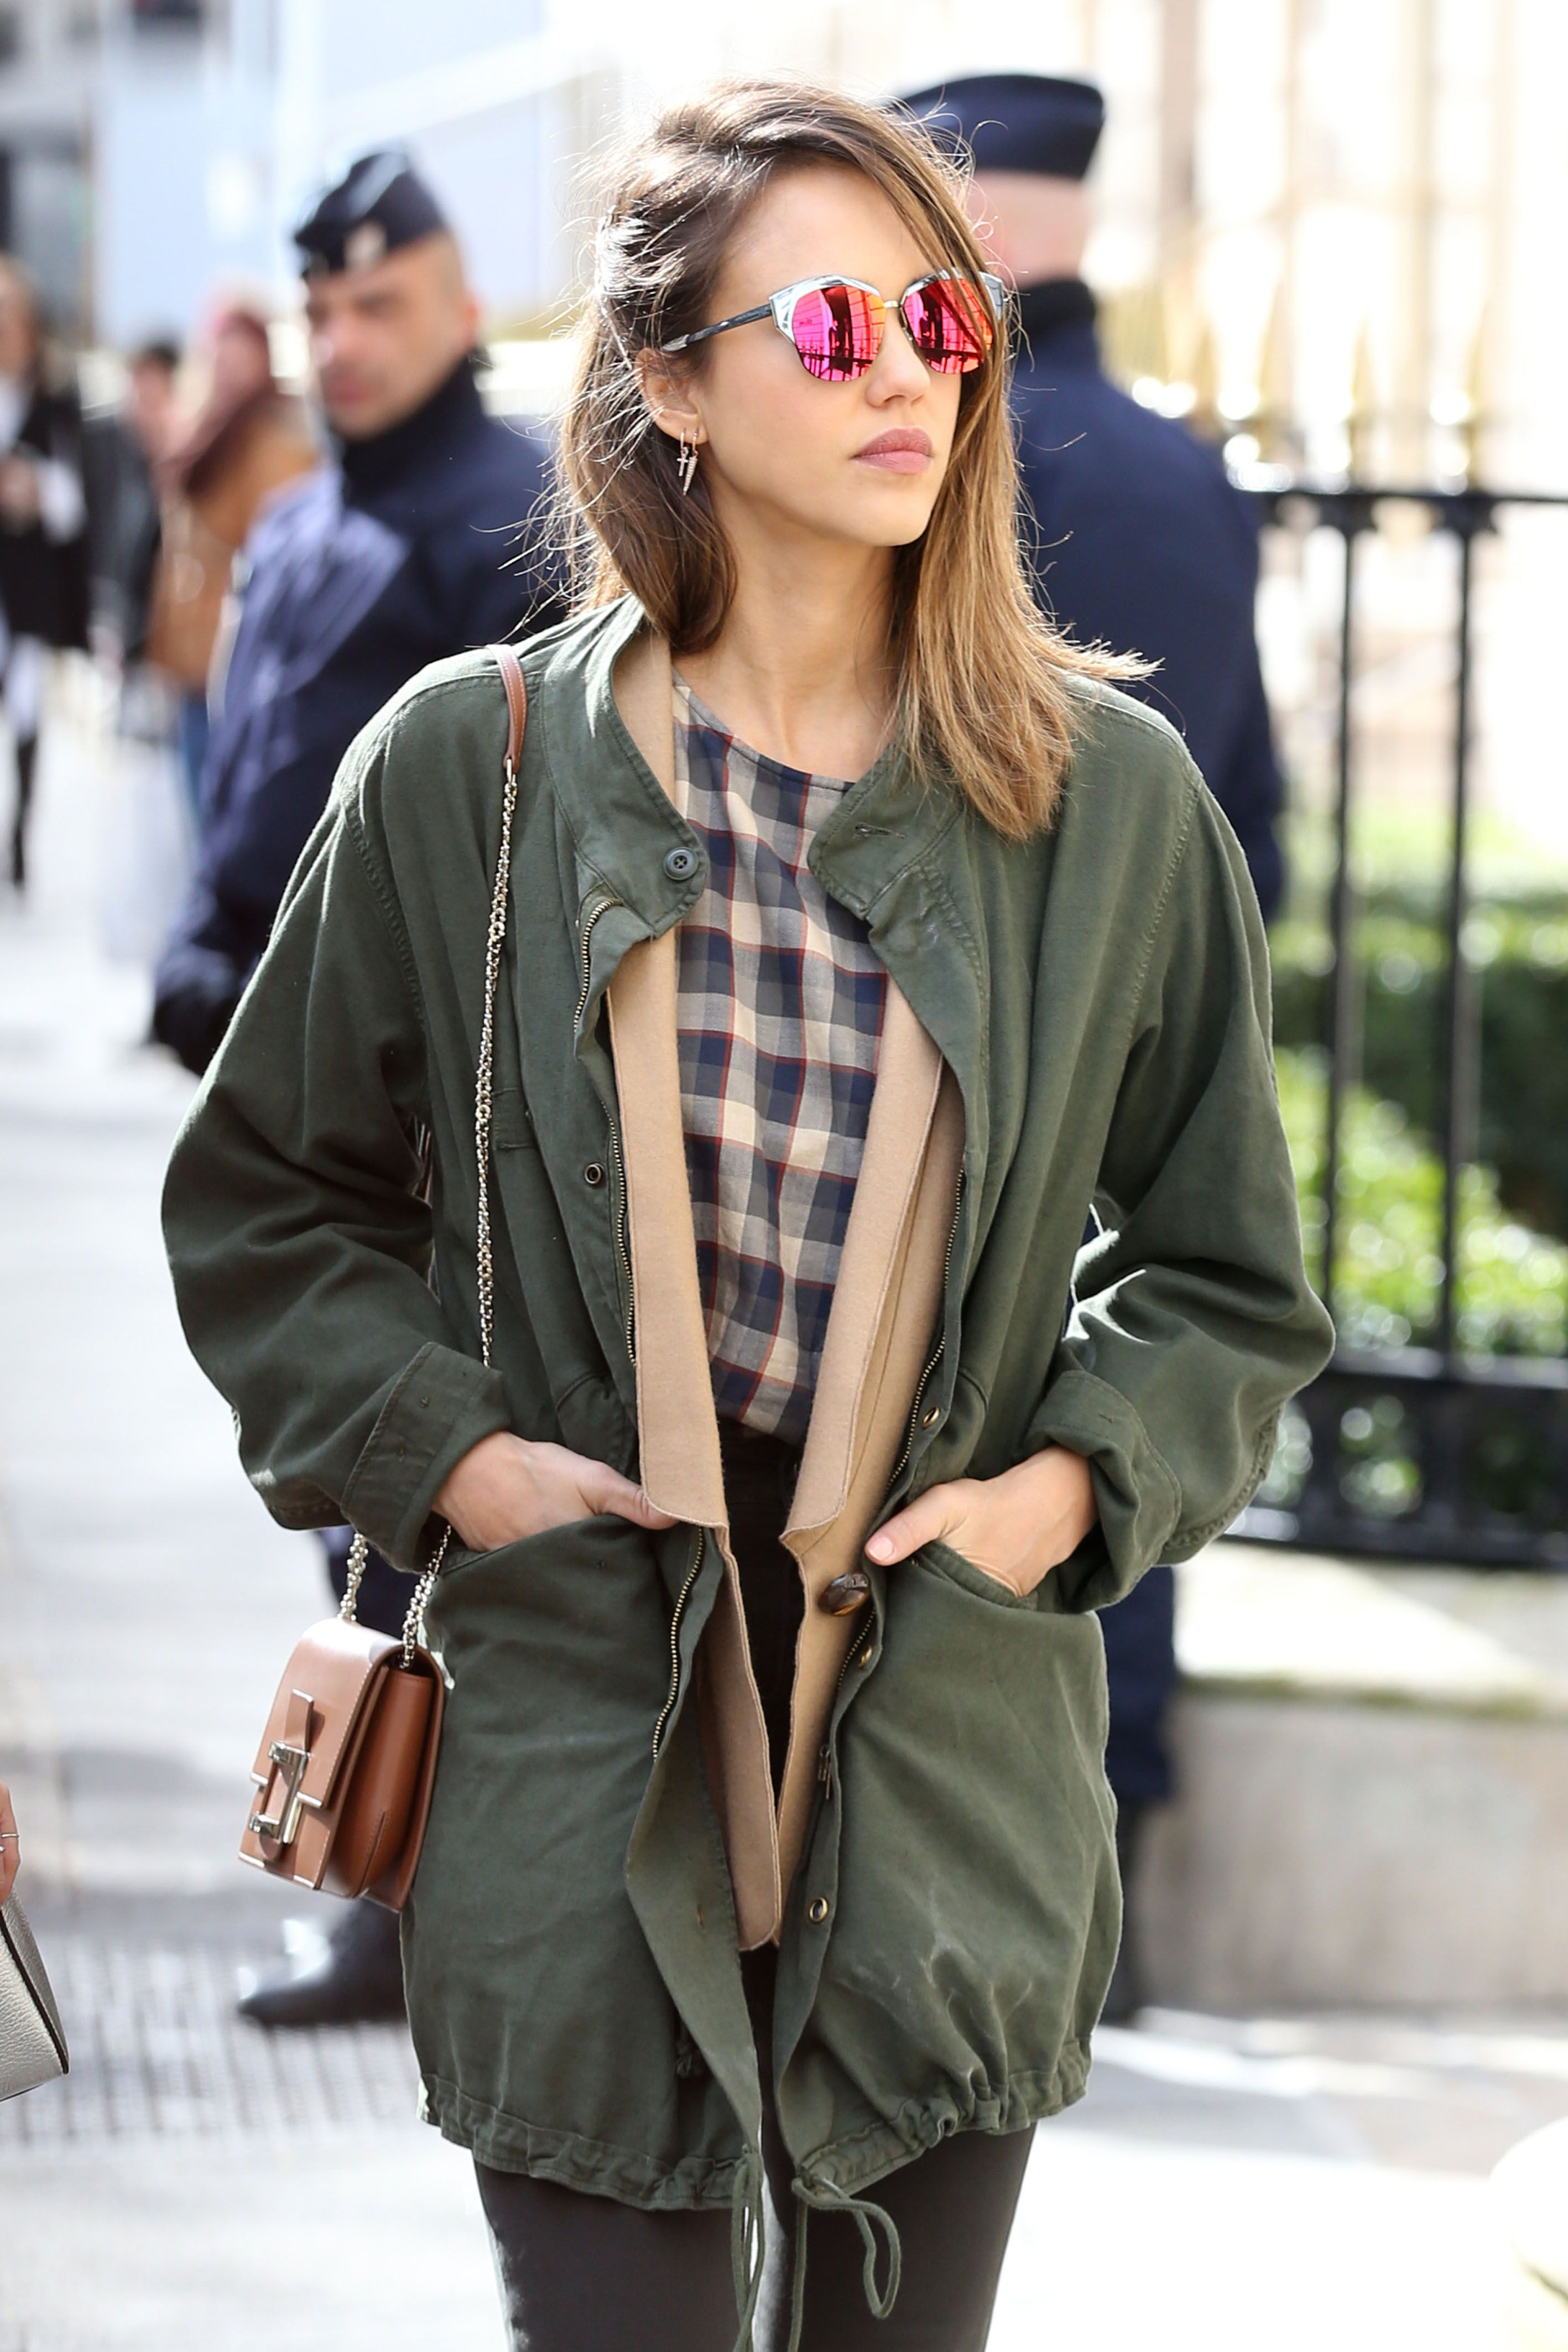 Jessica Alba out and about Paris during FW16 Fashion Week